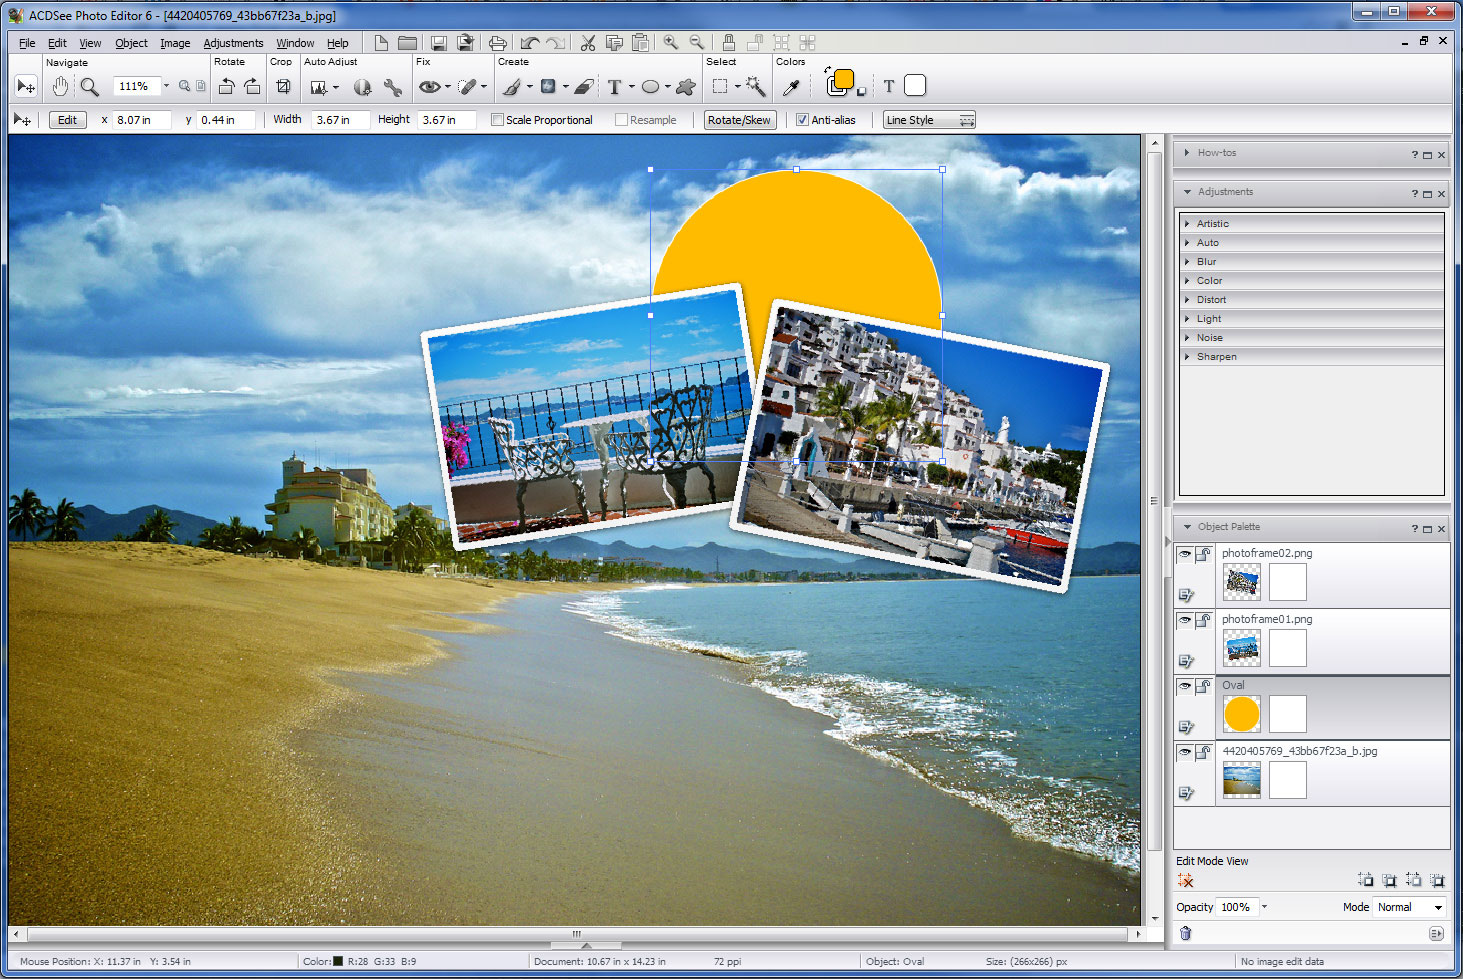 screenshot.ACDSee.Photo .Editor دانلود نرم افزار ویرایش تصاویر ACDSee Photo Editor 6.0 Build 359